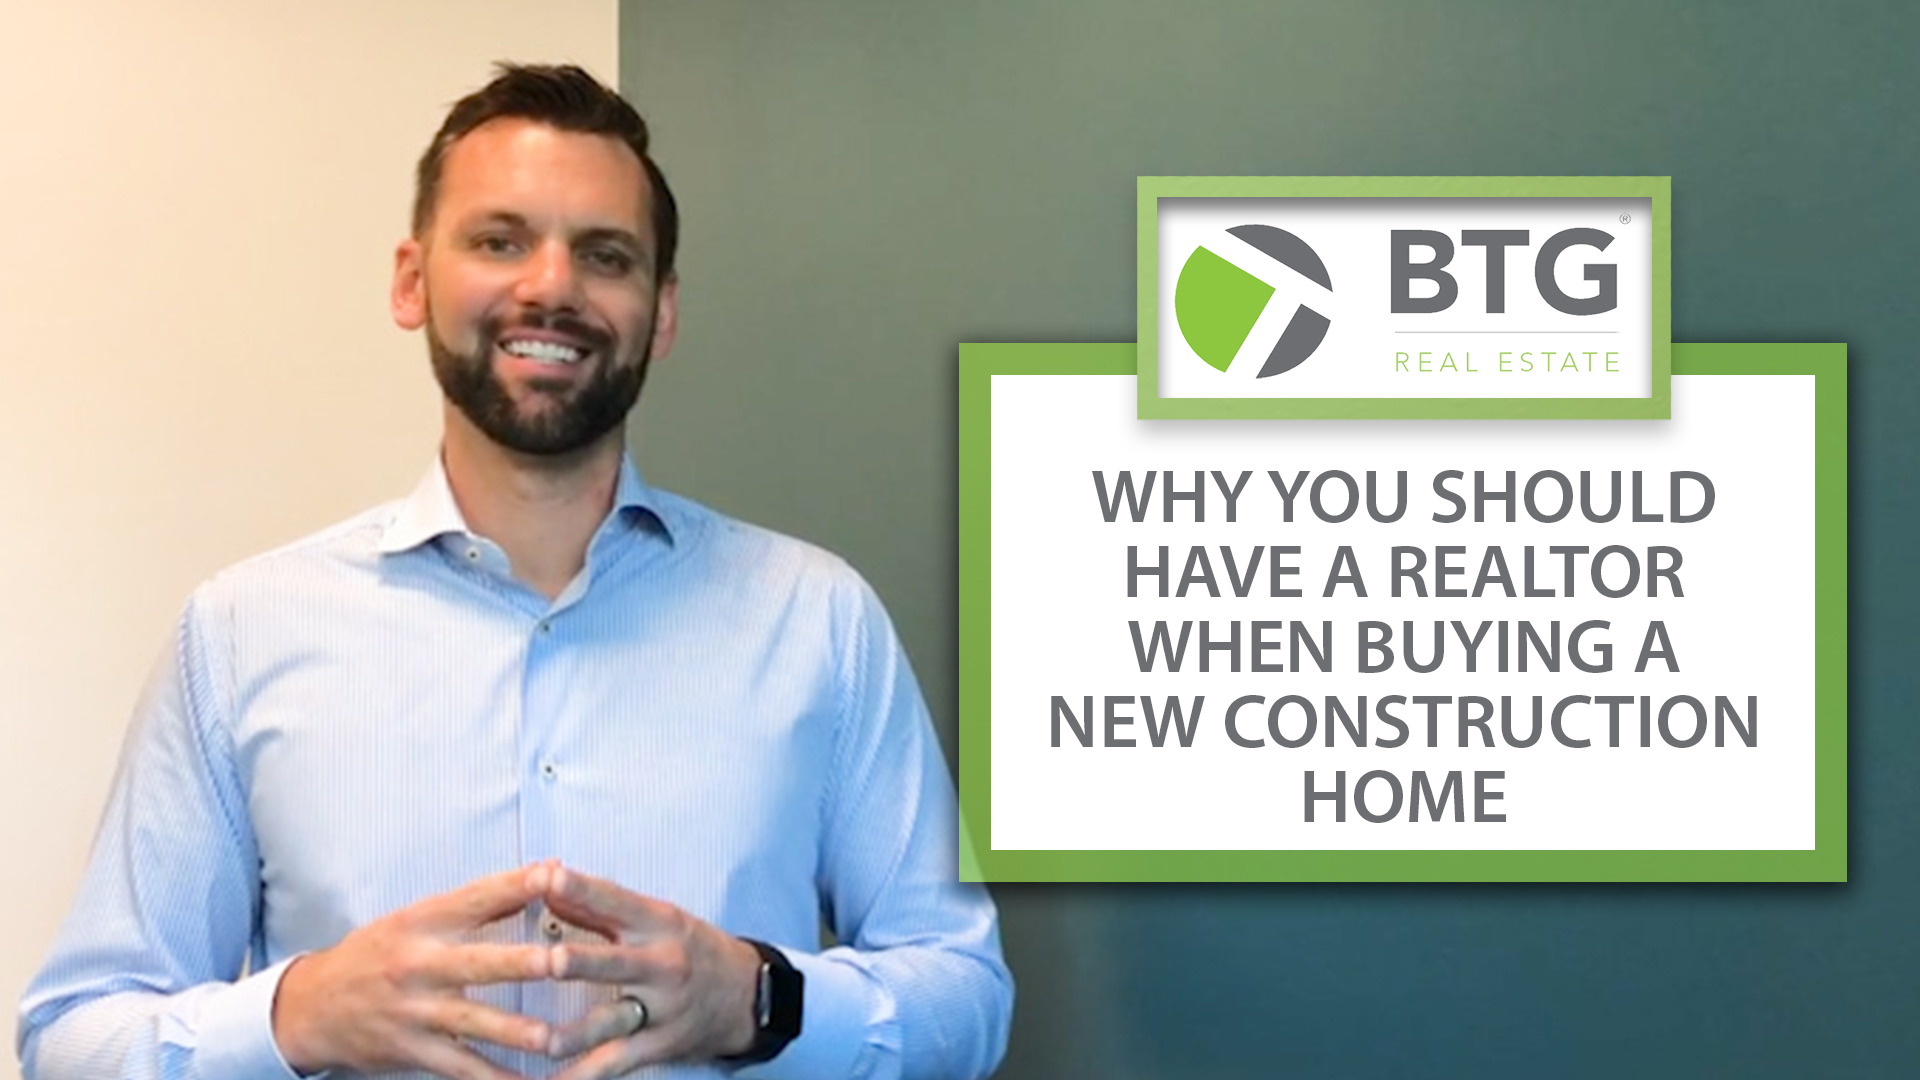 Professional Representation When Buying a New Construction Home